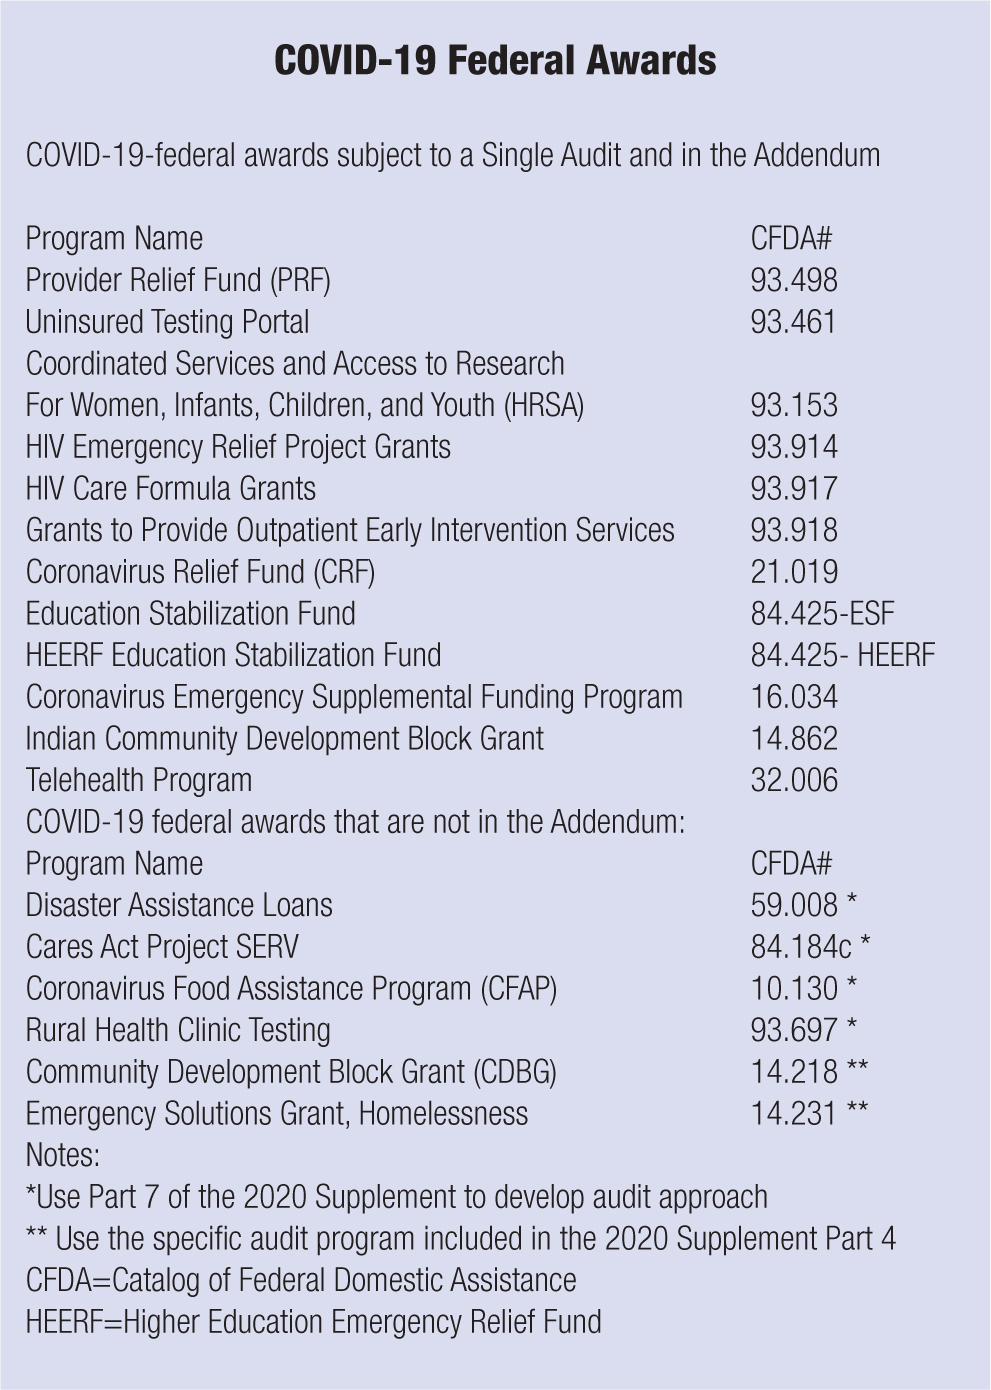 COVID-19-federal awards subject to a Single Audit and in the Addendum Program Name; CFDA# Provider Relief Fund (PRF); 93.498 Uninsured Testing Portal; 93.461 Coordinated Services and Access to Research For Women, Infants, Children, and Youth (HRSA); 93.153 HIV Emergency Relief Project Grants; 93.914 HIV Care Formula Grants; 93.917 Grants to Provide Outpatient Early Intervention Services; 93.918 Coronavirus Relief Fund (CRF); 21.019 Education Stabilization Fund; 84.425-ESF HEERF Education Stabilization Fund; 84.425-HEERF Coronavirus Emergency Supplemental Funding Program; 16.034 Indian Community Development Block Grant; 14.862 Telehealth Program; 32.006 COVID-19 federal awards that are not in the Addendum: Program Name; CFDA# Disaster Assistance Loans; 59.008 * Cares Act Project SERV; 84.184c * Coronavirus Food Assistance Program (CFAP); 10.130 * Rural Health Clinic Testing; 93.697 * Community Development Block Grant (CDBG); 14.218 ** Emergency Solutions Grant, Homelessness; 14.231 ** Notes: *Use Part 7 of the 2020 Supplement to develop audit approach ** Use the specific audit program included in the 2020 Supplement Part 4 CFDA=Catalog of Federal Domestic Assistance HEERF=Higher Education Emergency Relief Fund